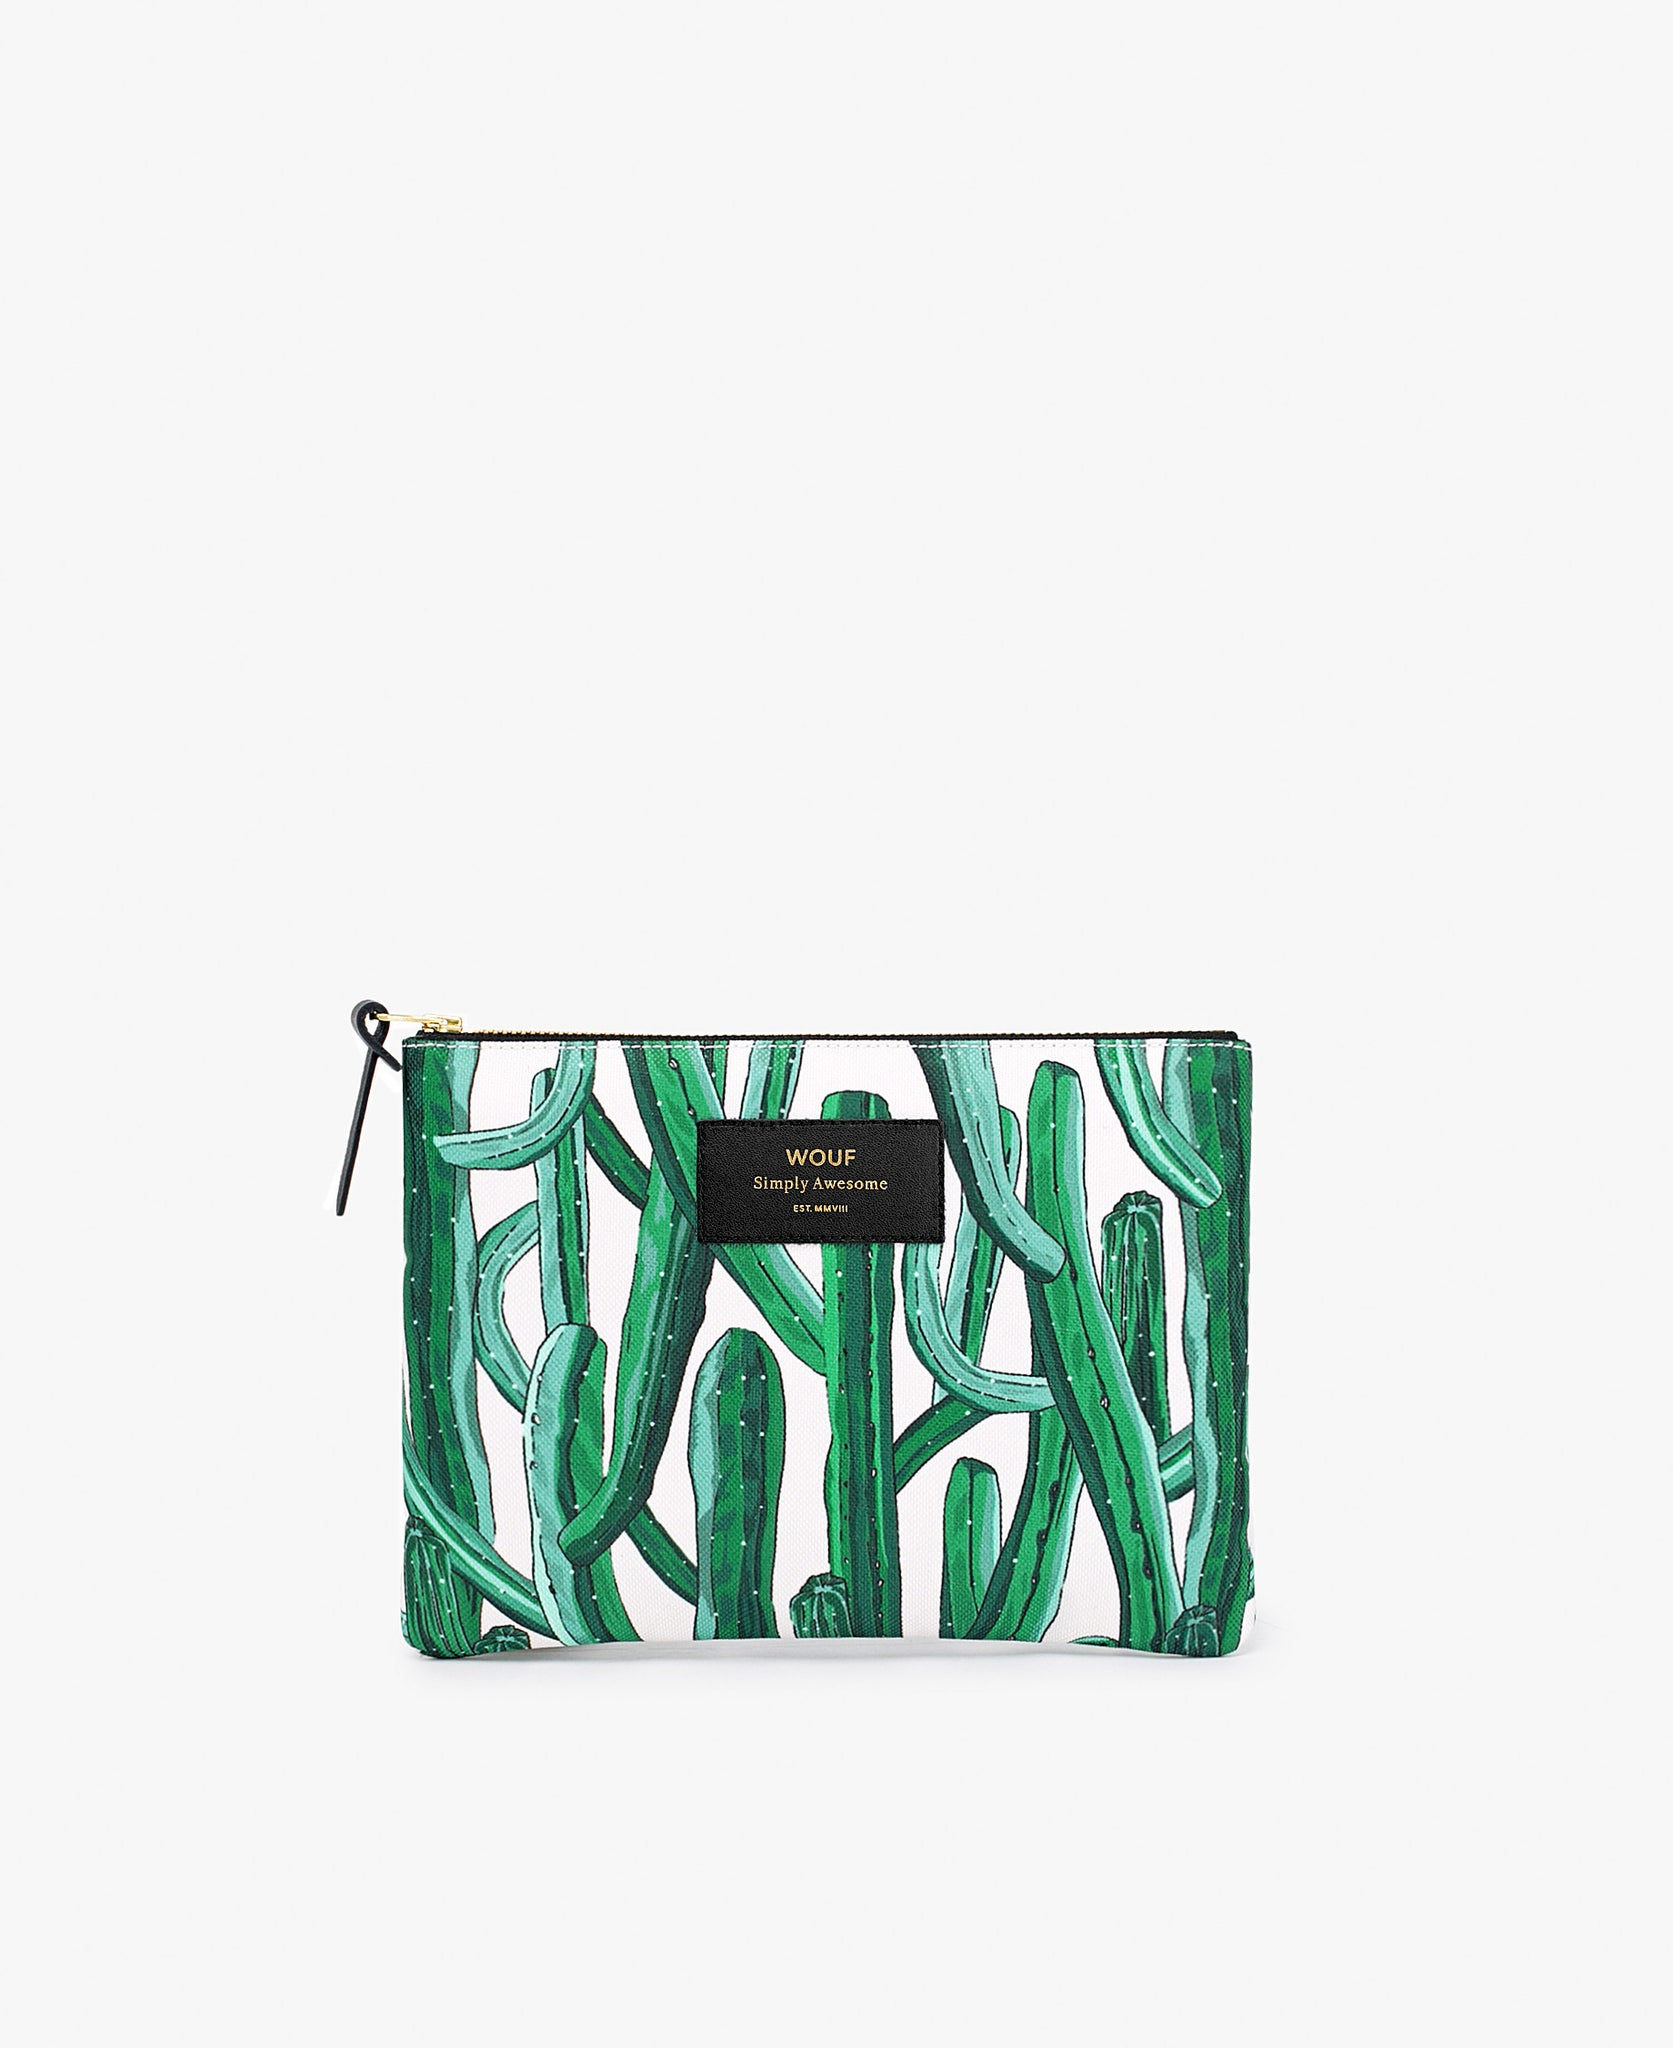 Woouf Wild Cactus Large Pouch